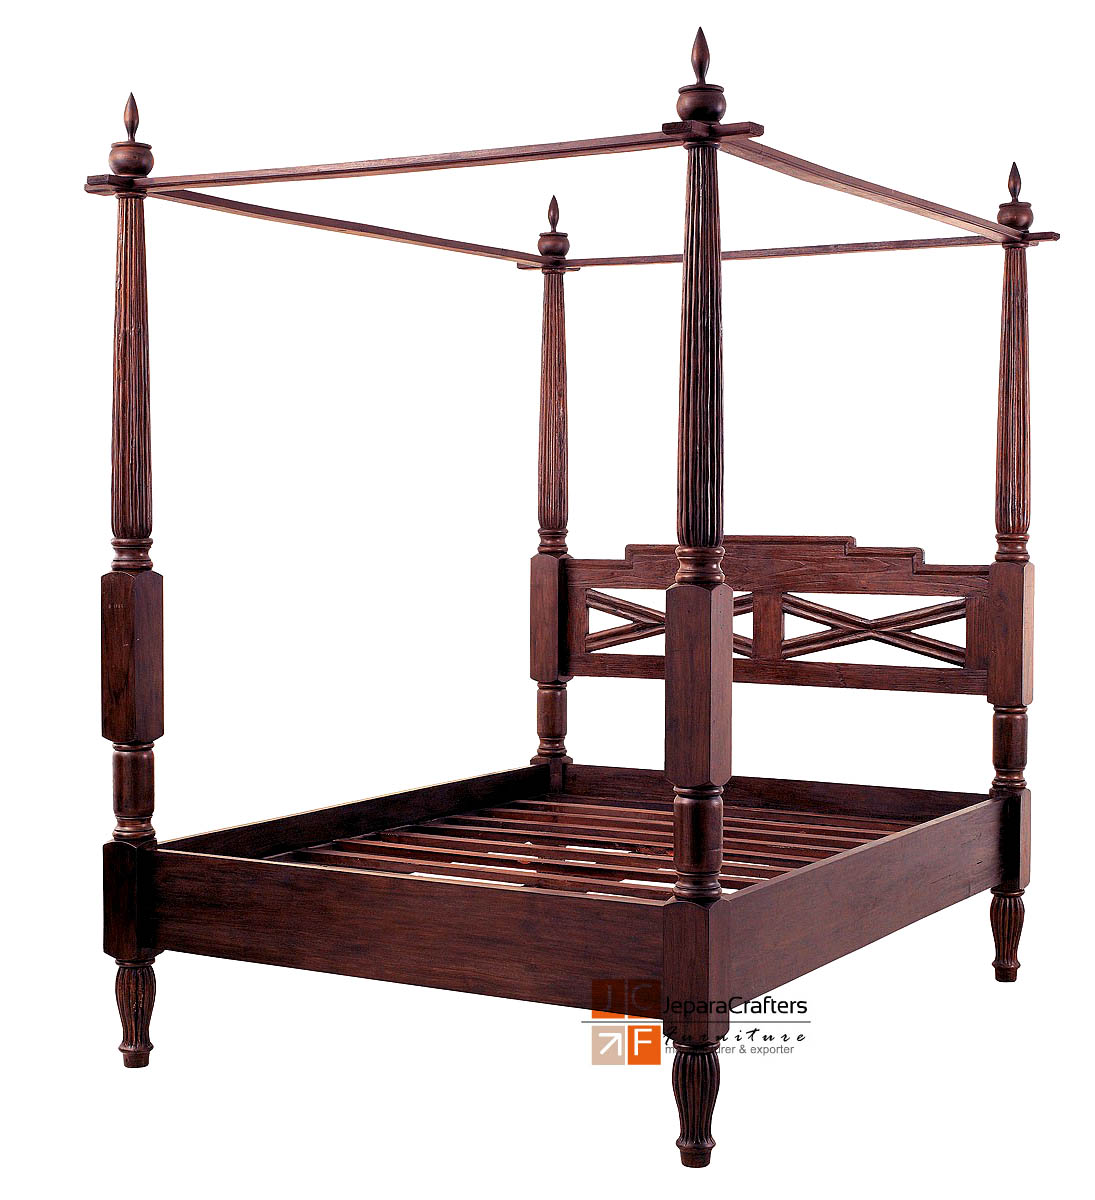 Bali Antique Canopy Beds Frame Solid